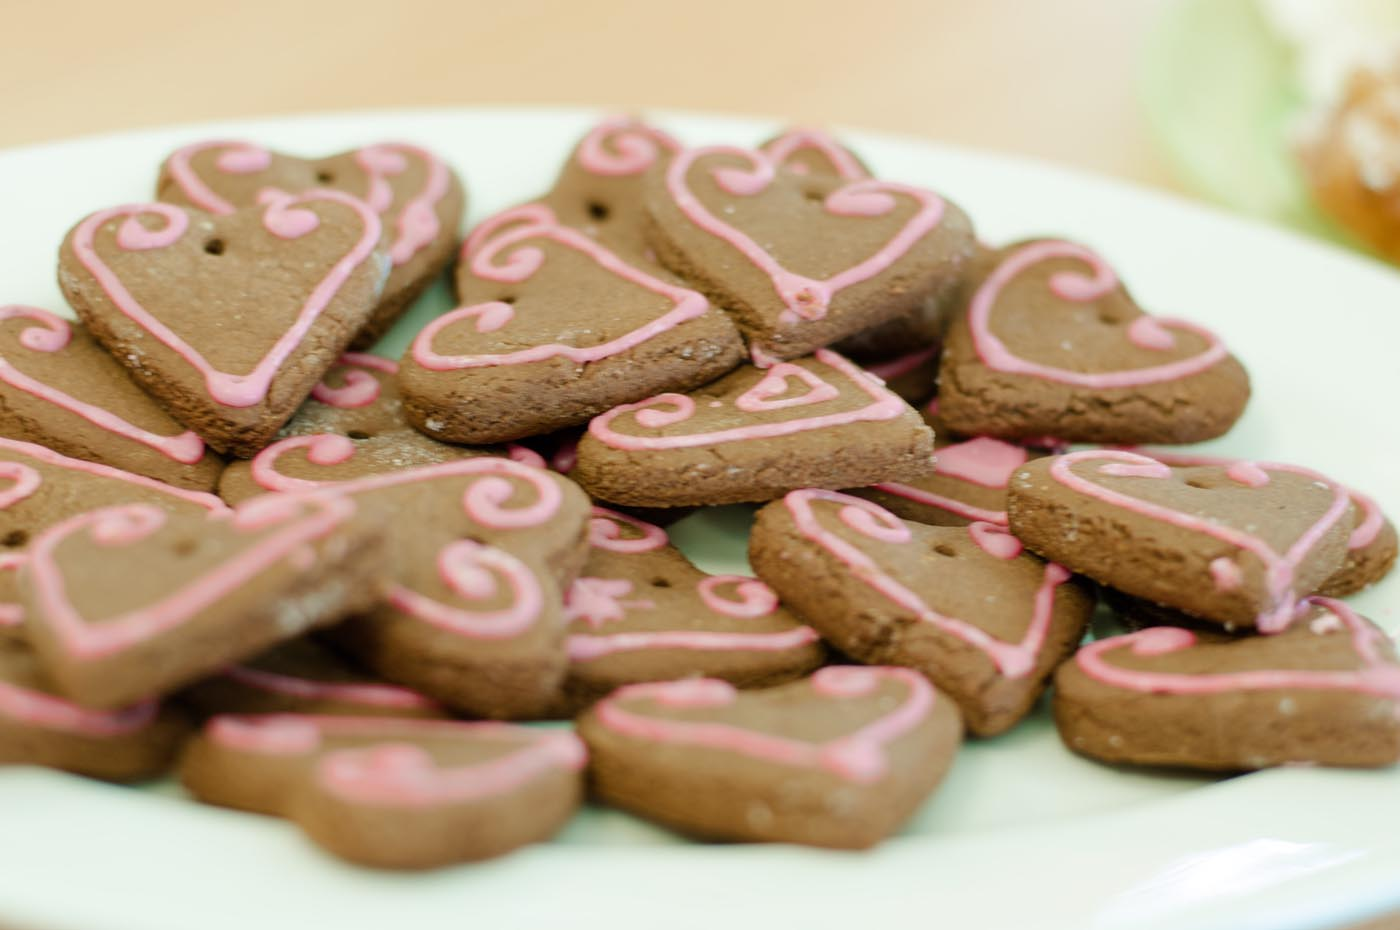 Photo showing close-up of German gingerbread hearts, Lebkuchen - click to view larger image